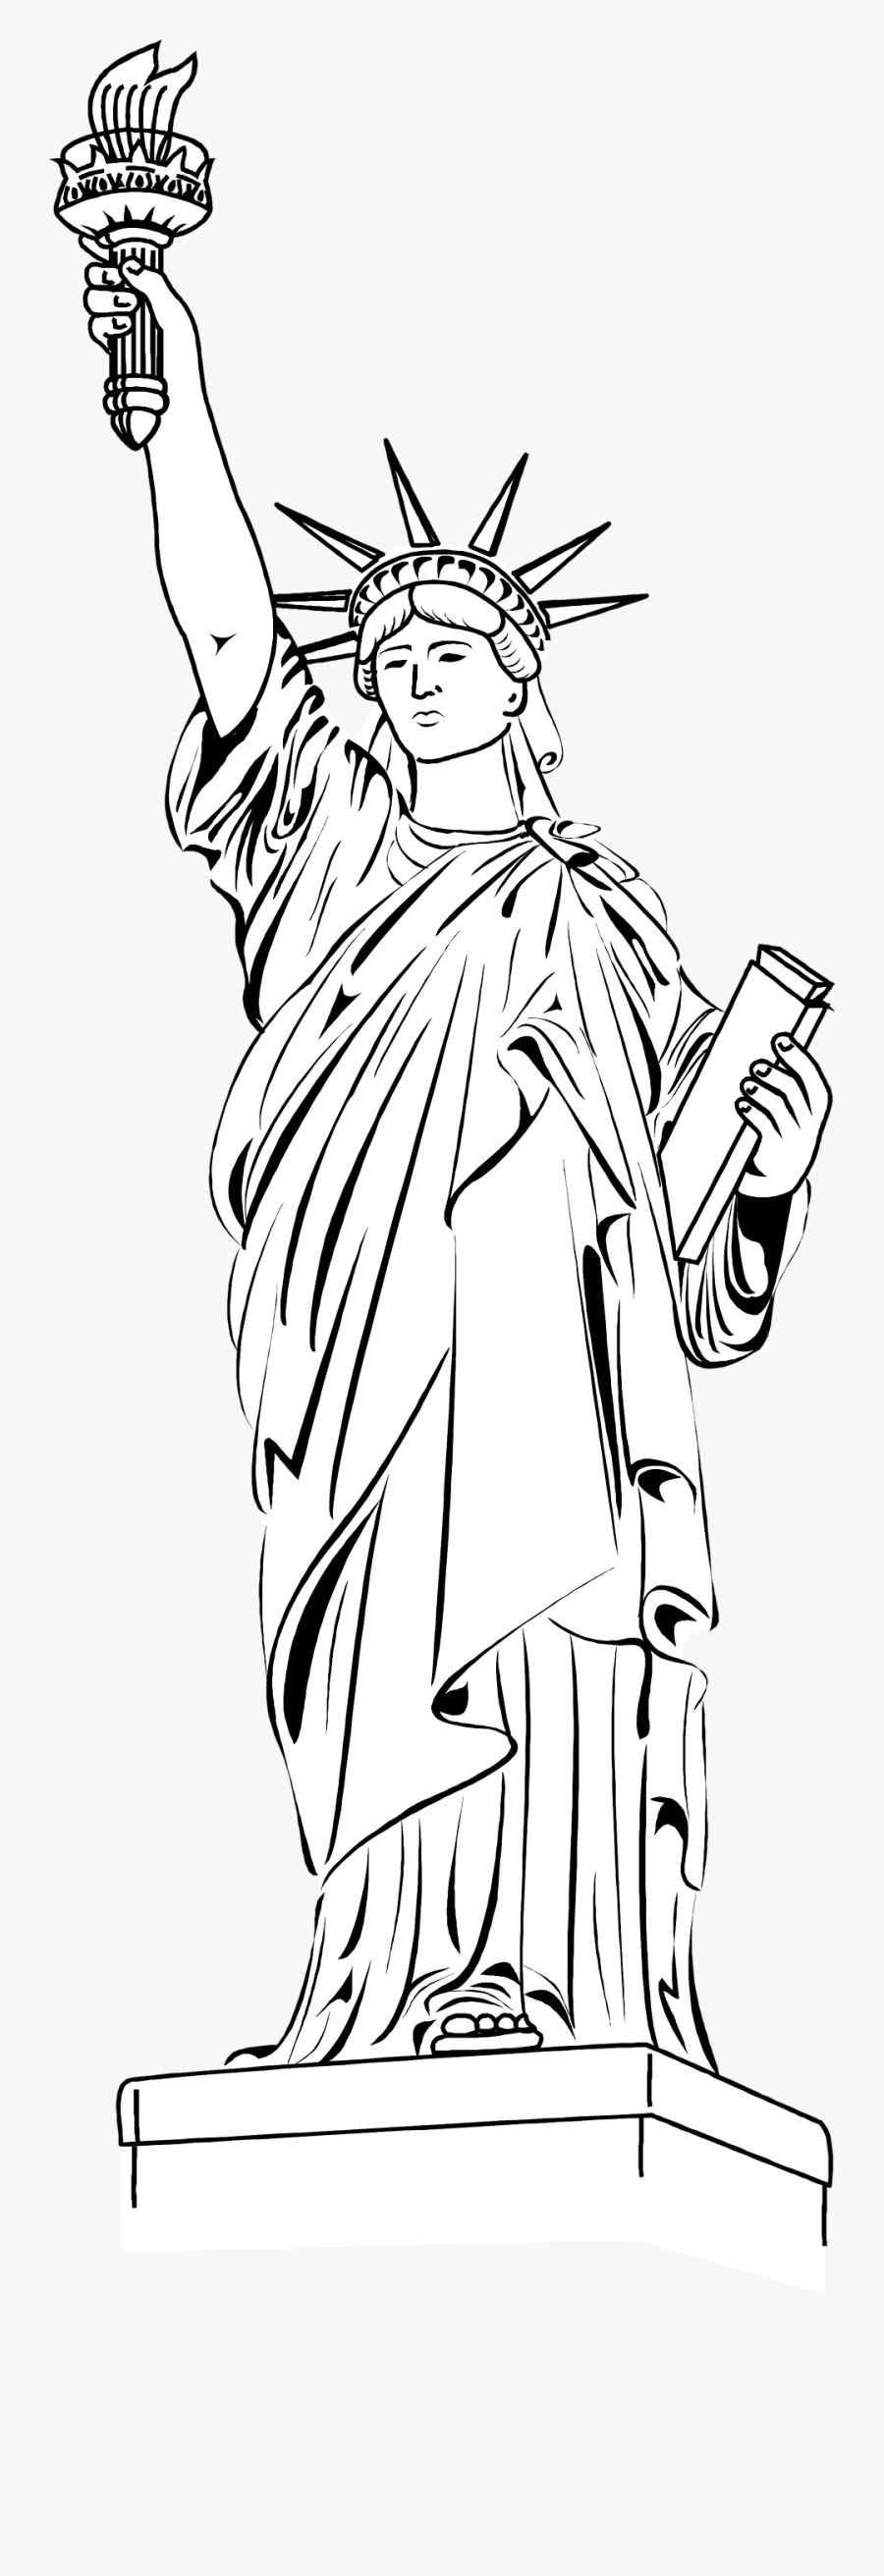 Transparent Statue Of Liberty Png - Statue Of Liberty ...